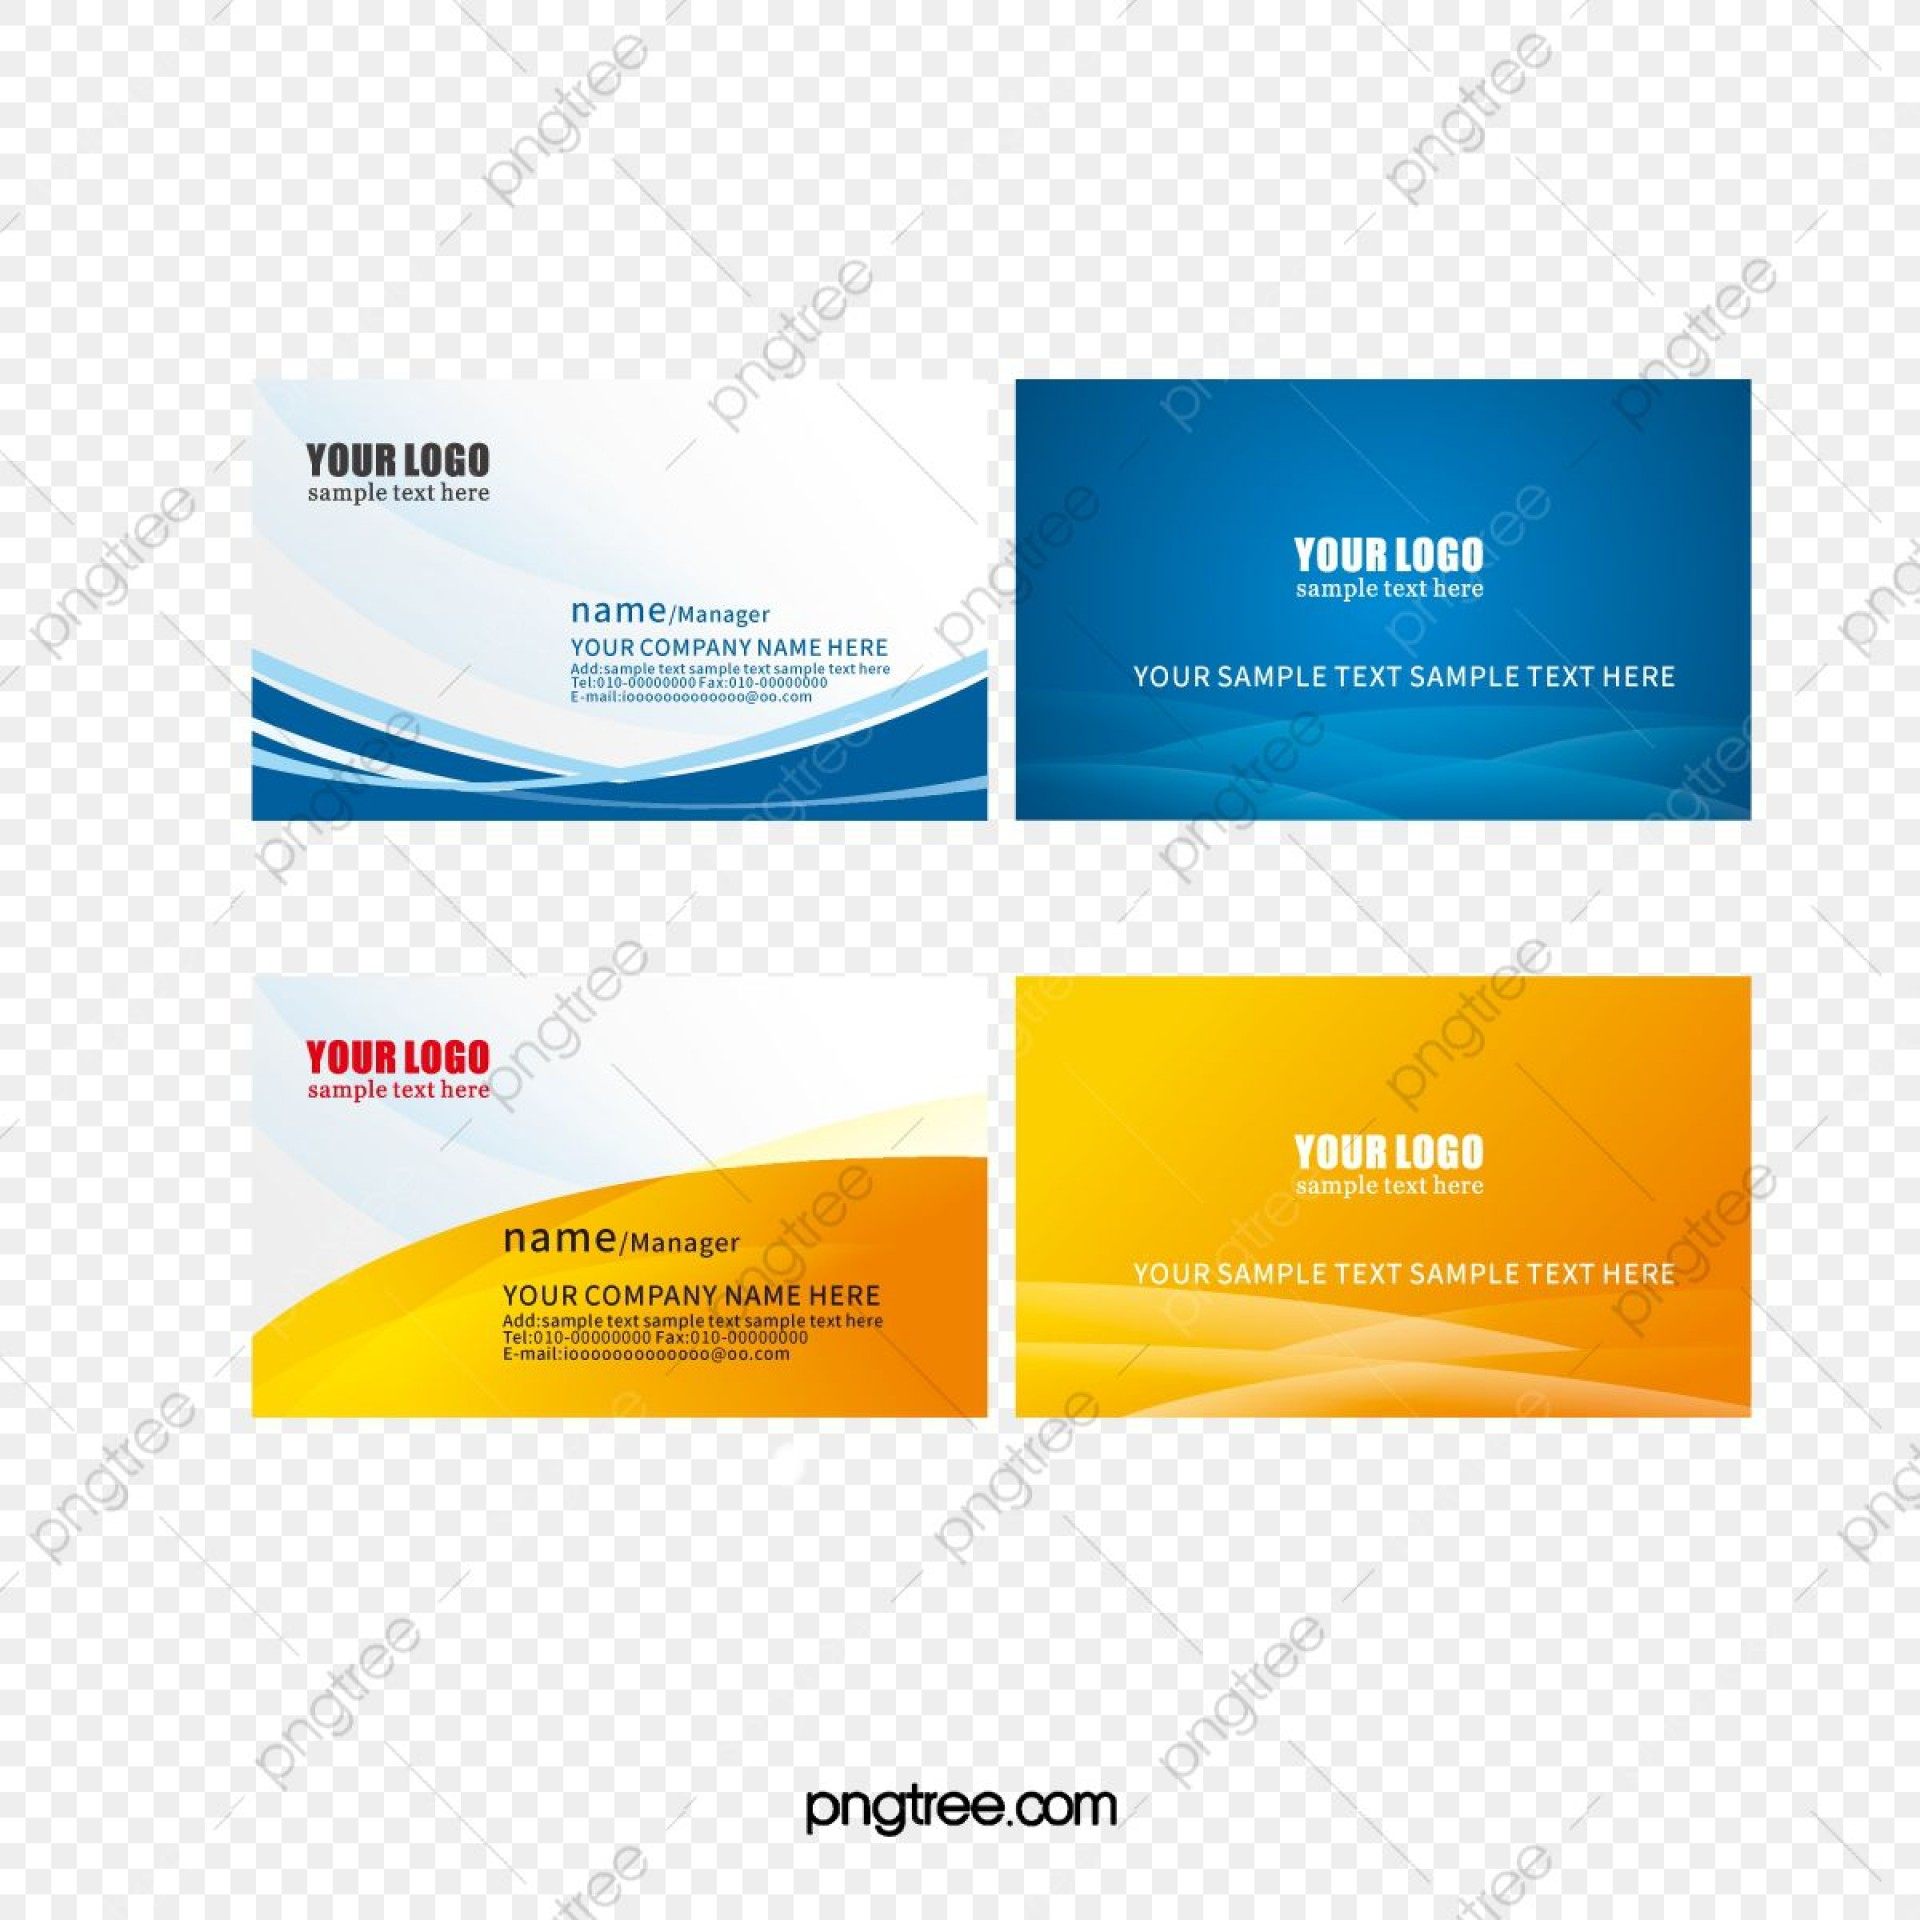 008 Best Download Busines Card Template Highest Clarity  Free For Illustrator Visiting Layout Word 20101920